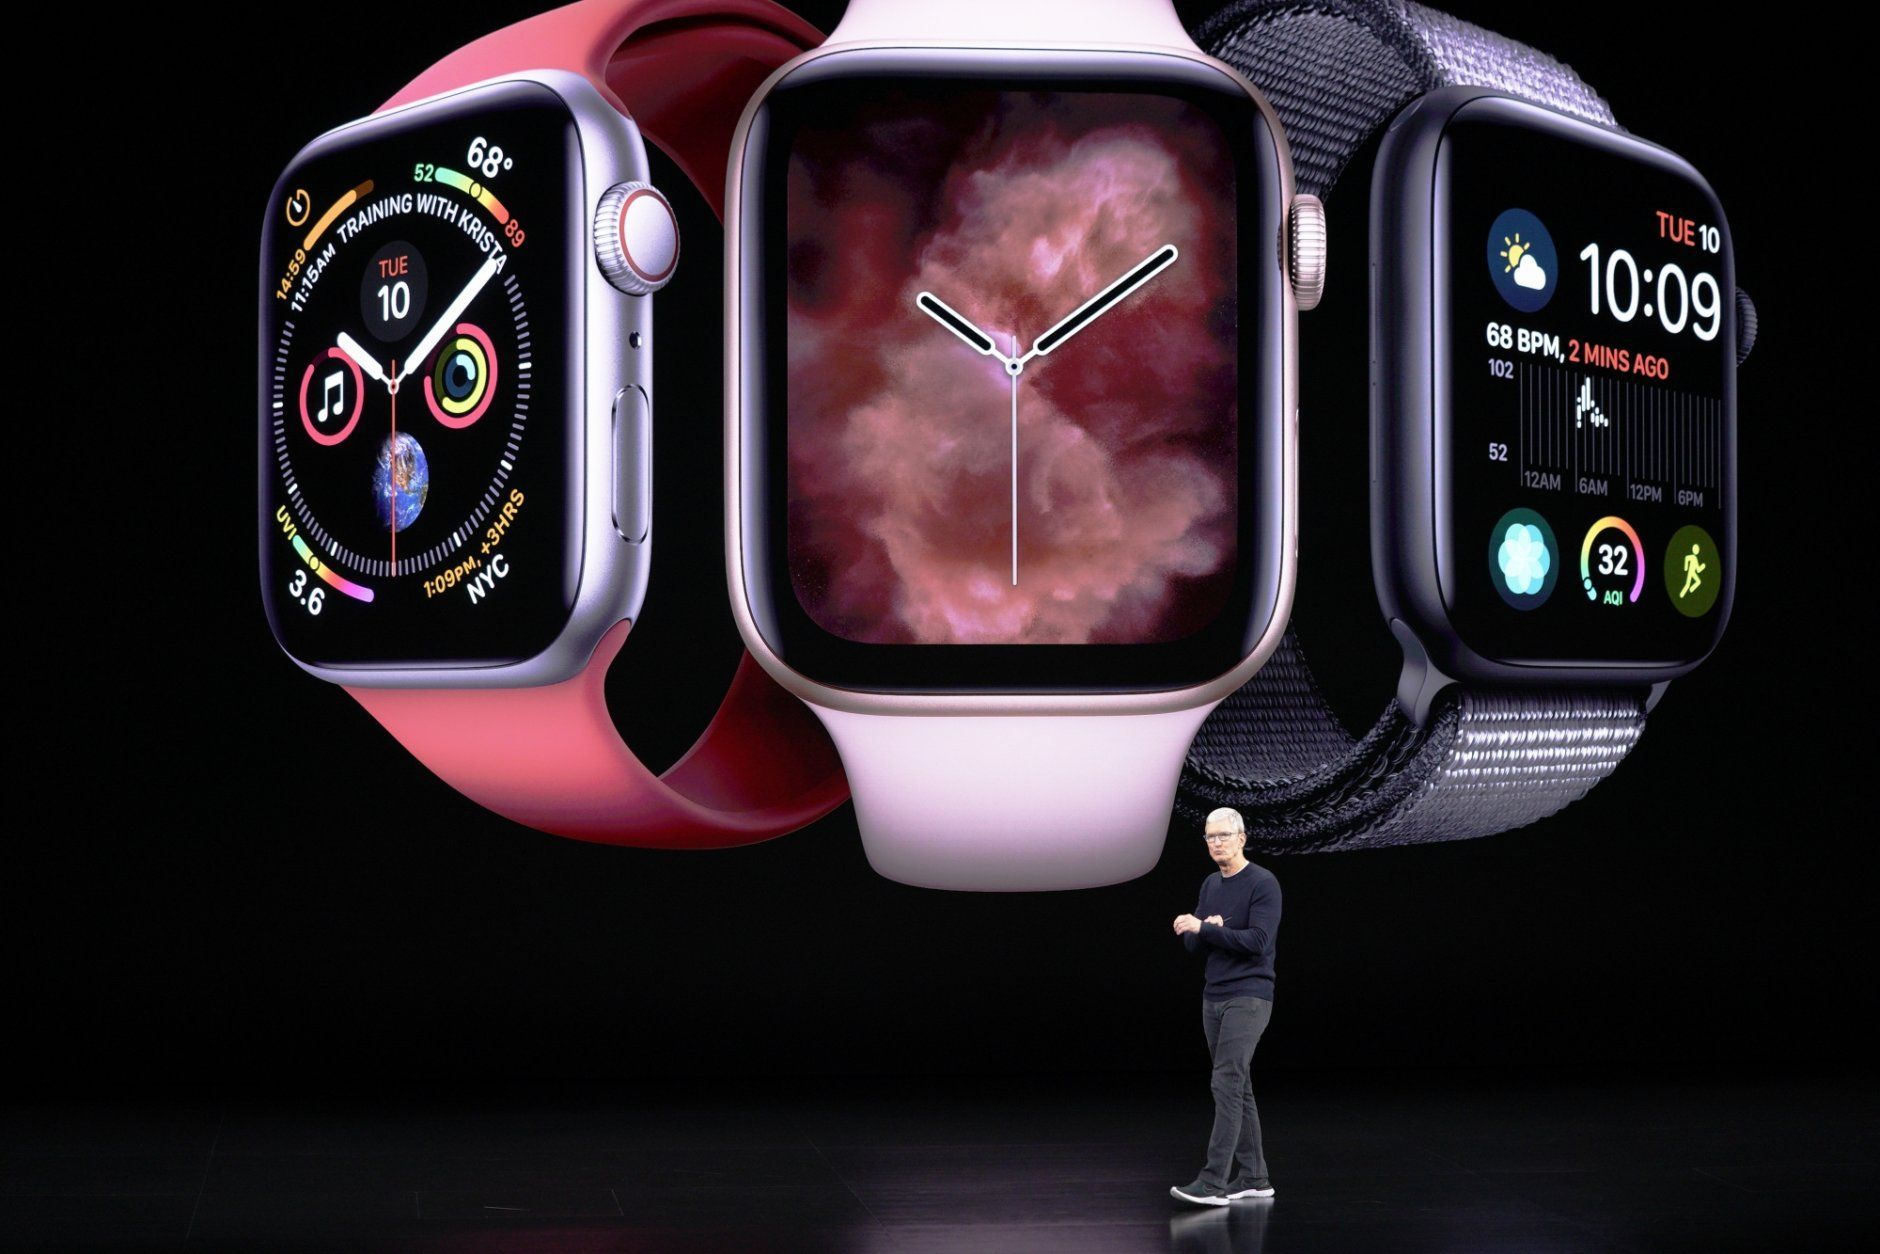 Apple CEO Tim Cook talks about the Apple watch during a new product event Tuesday, Sept. 10, 2019, in Cupertino, Calif. (AP Photo/Tony Avelar)